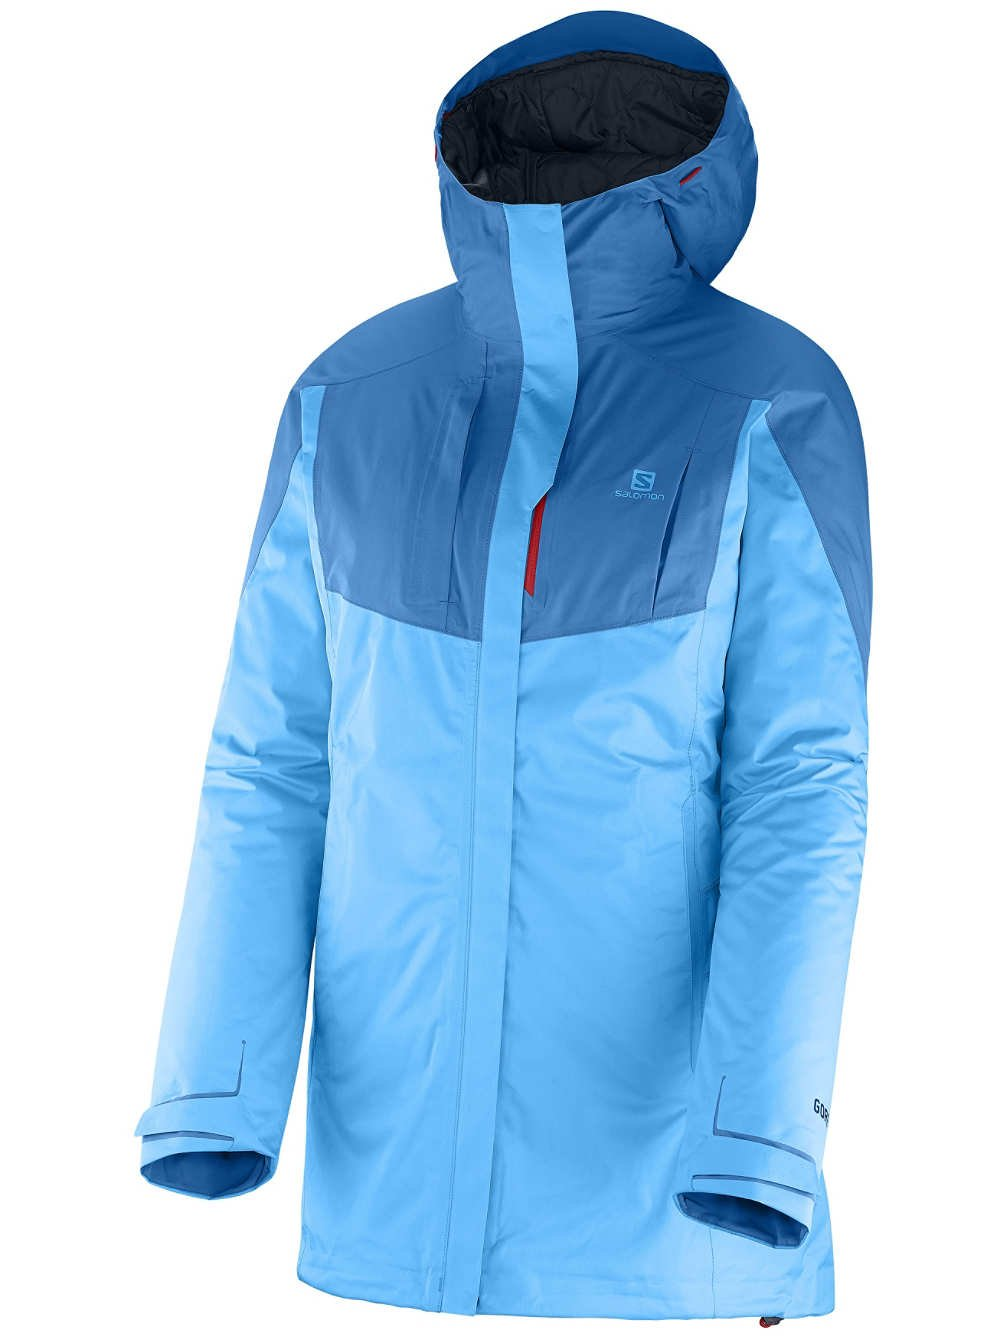 Damen Snowboard Jacke Salomon Cyclone Jacket